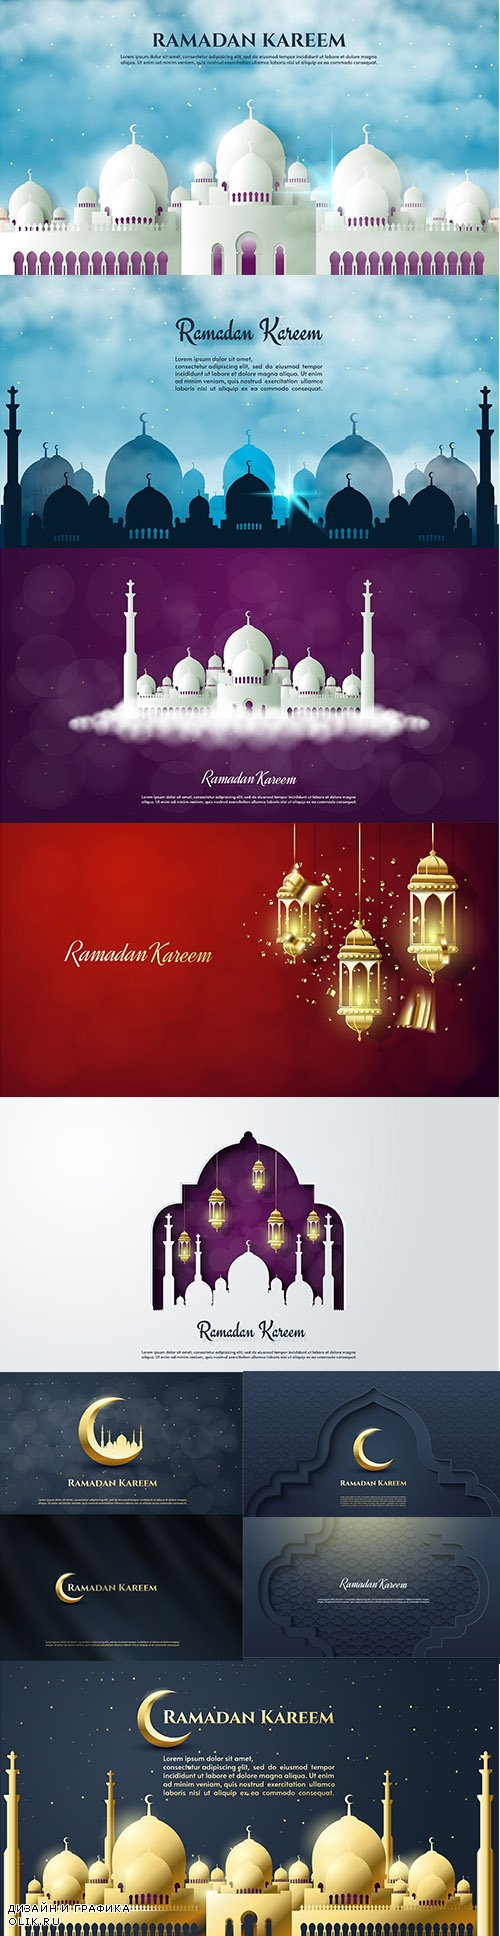 Ramadan Kareem Premium Illustrations Set